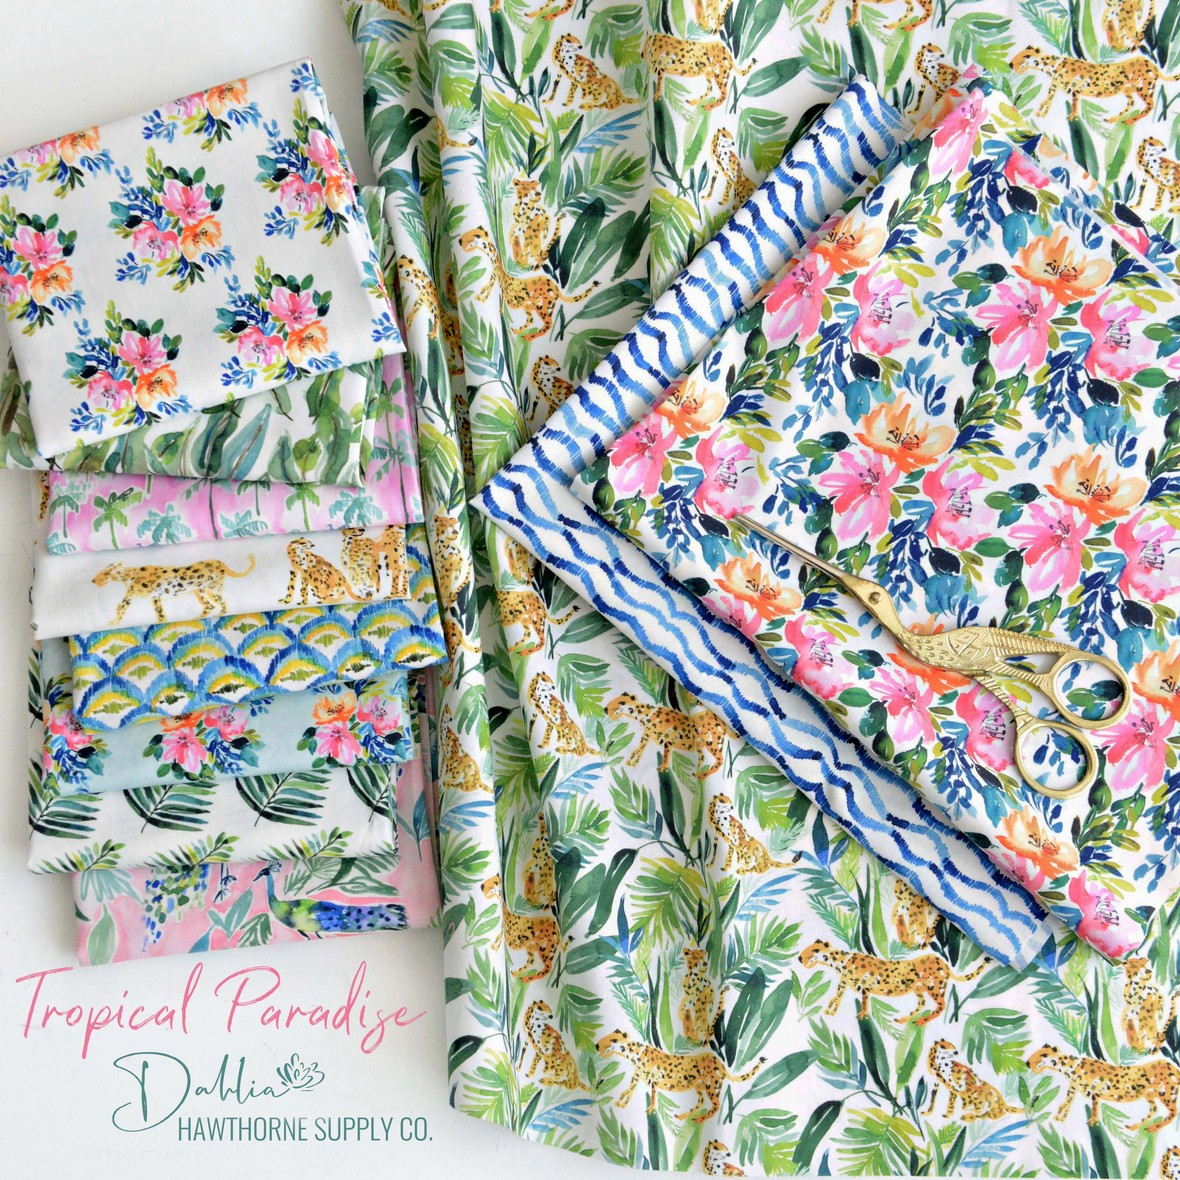 Tropical Paradise Dahlia Studio for Hawthorne Supply Co